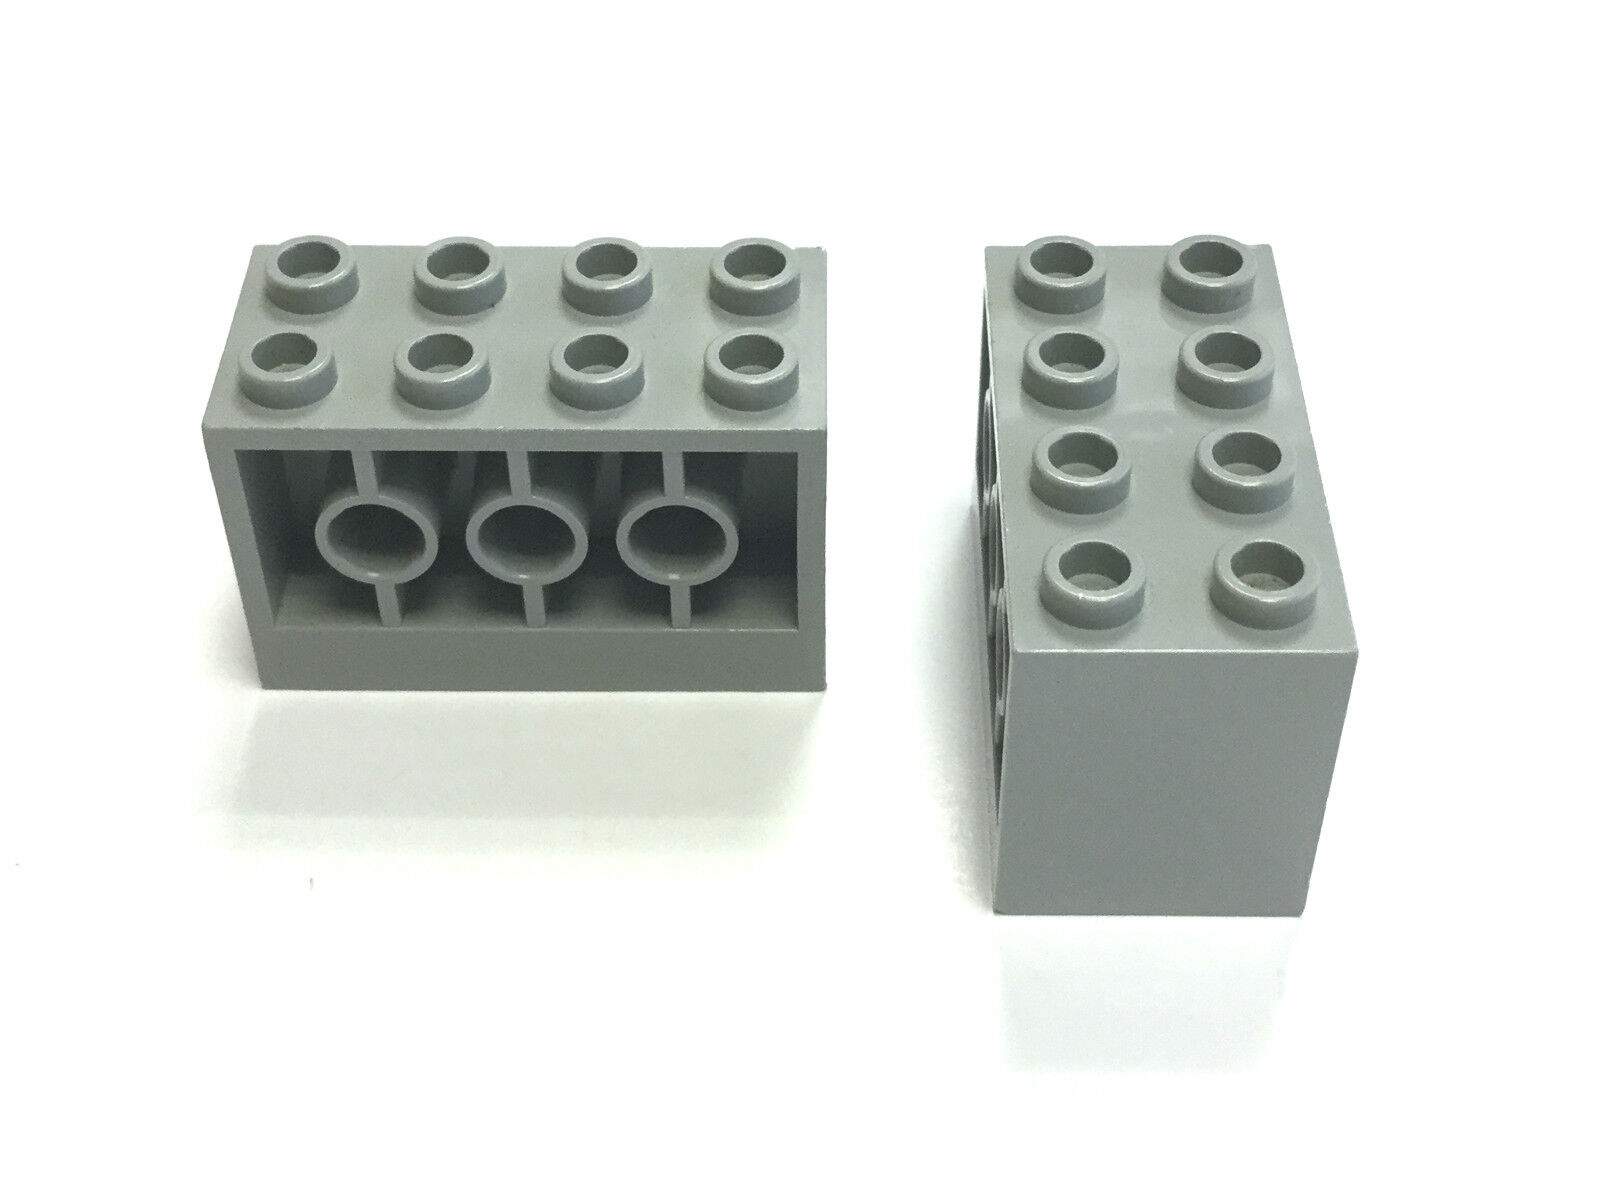 Lego ® brick side fixing 2x4x2 brick with holes on sid choose color 6061